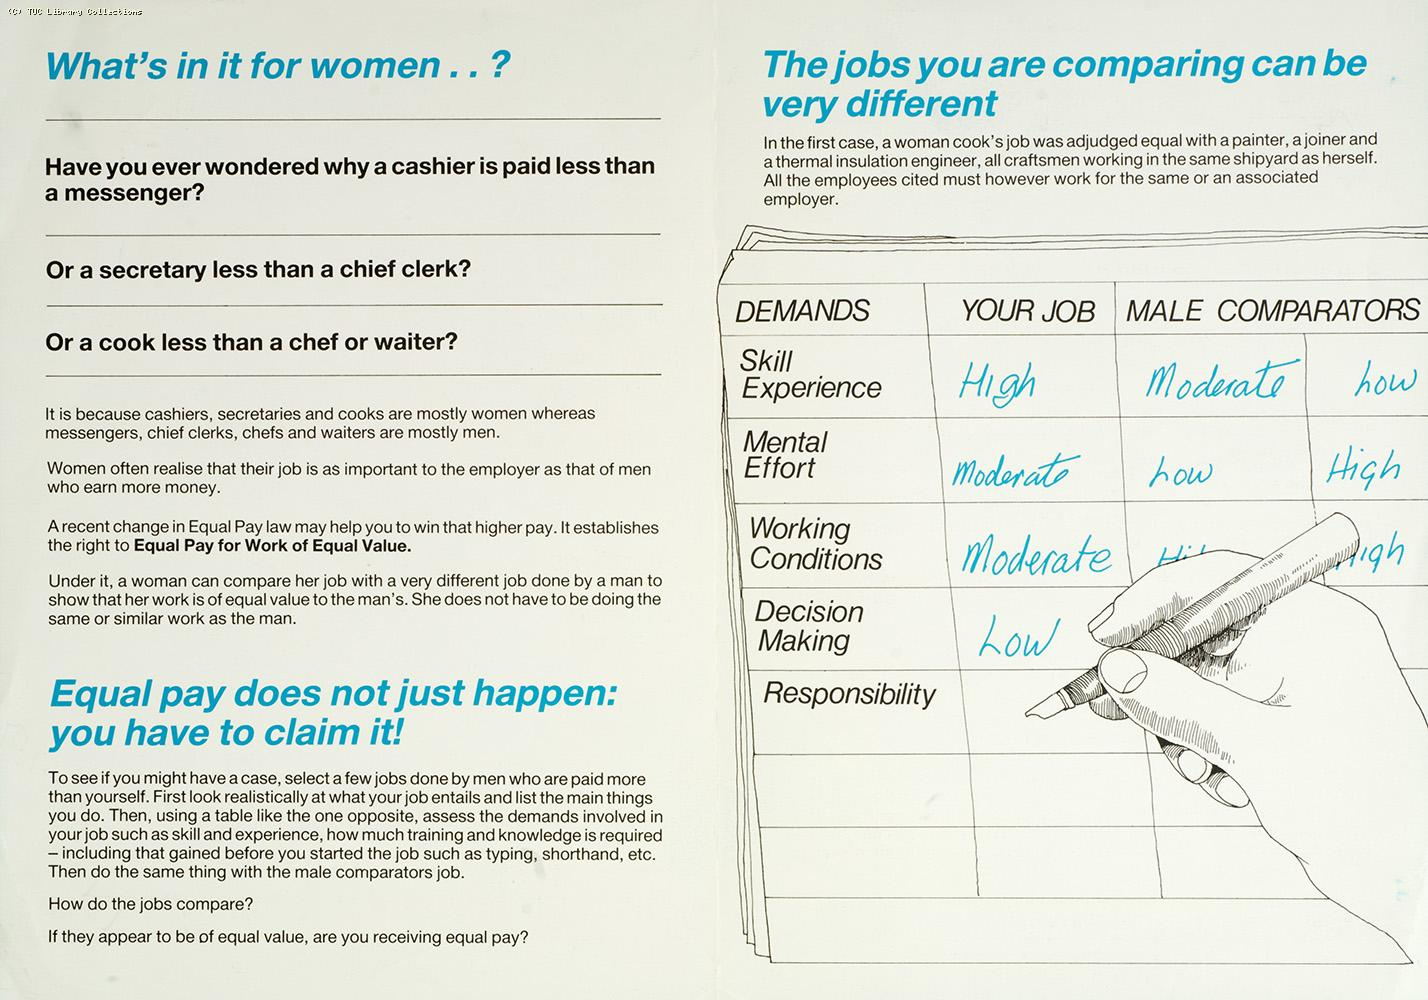 What's in it for women - BIFU leaflet, 1986